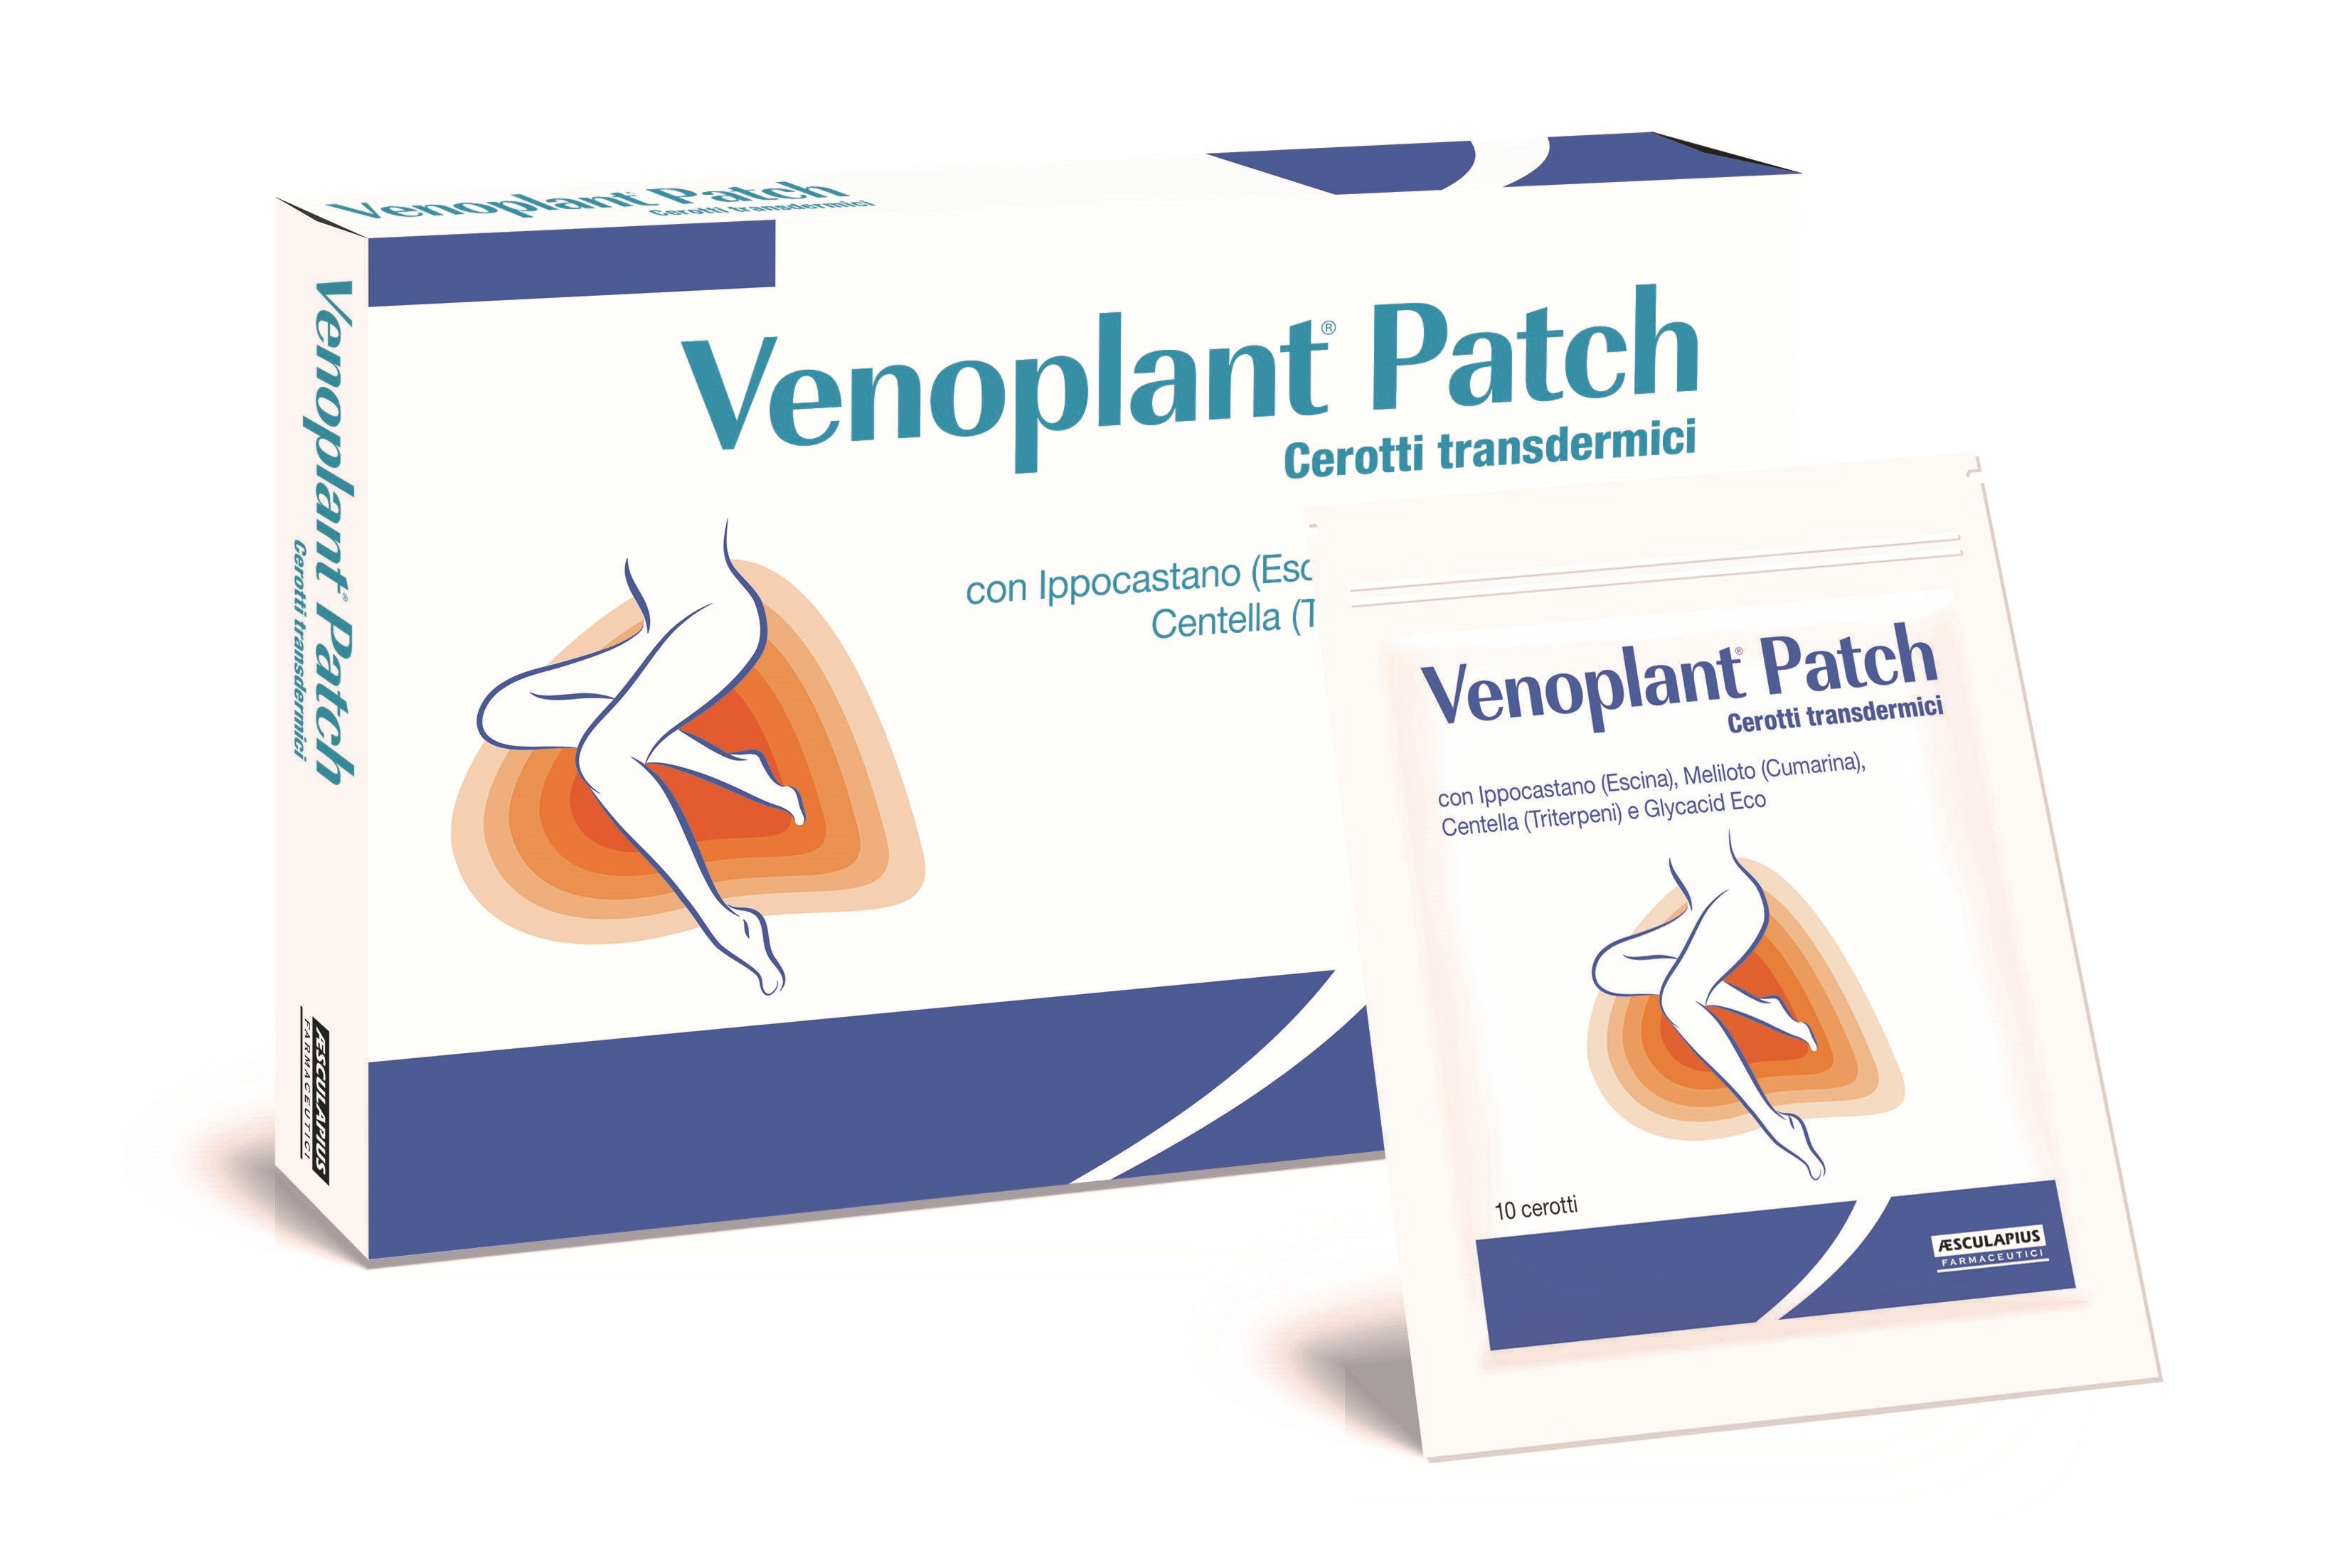 Venoplant Patch